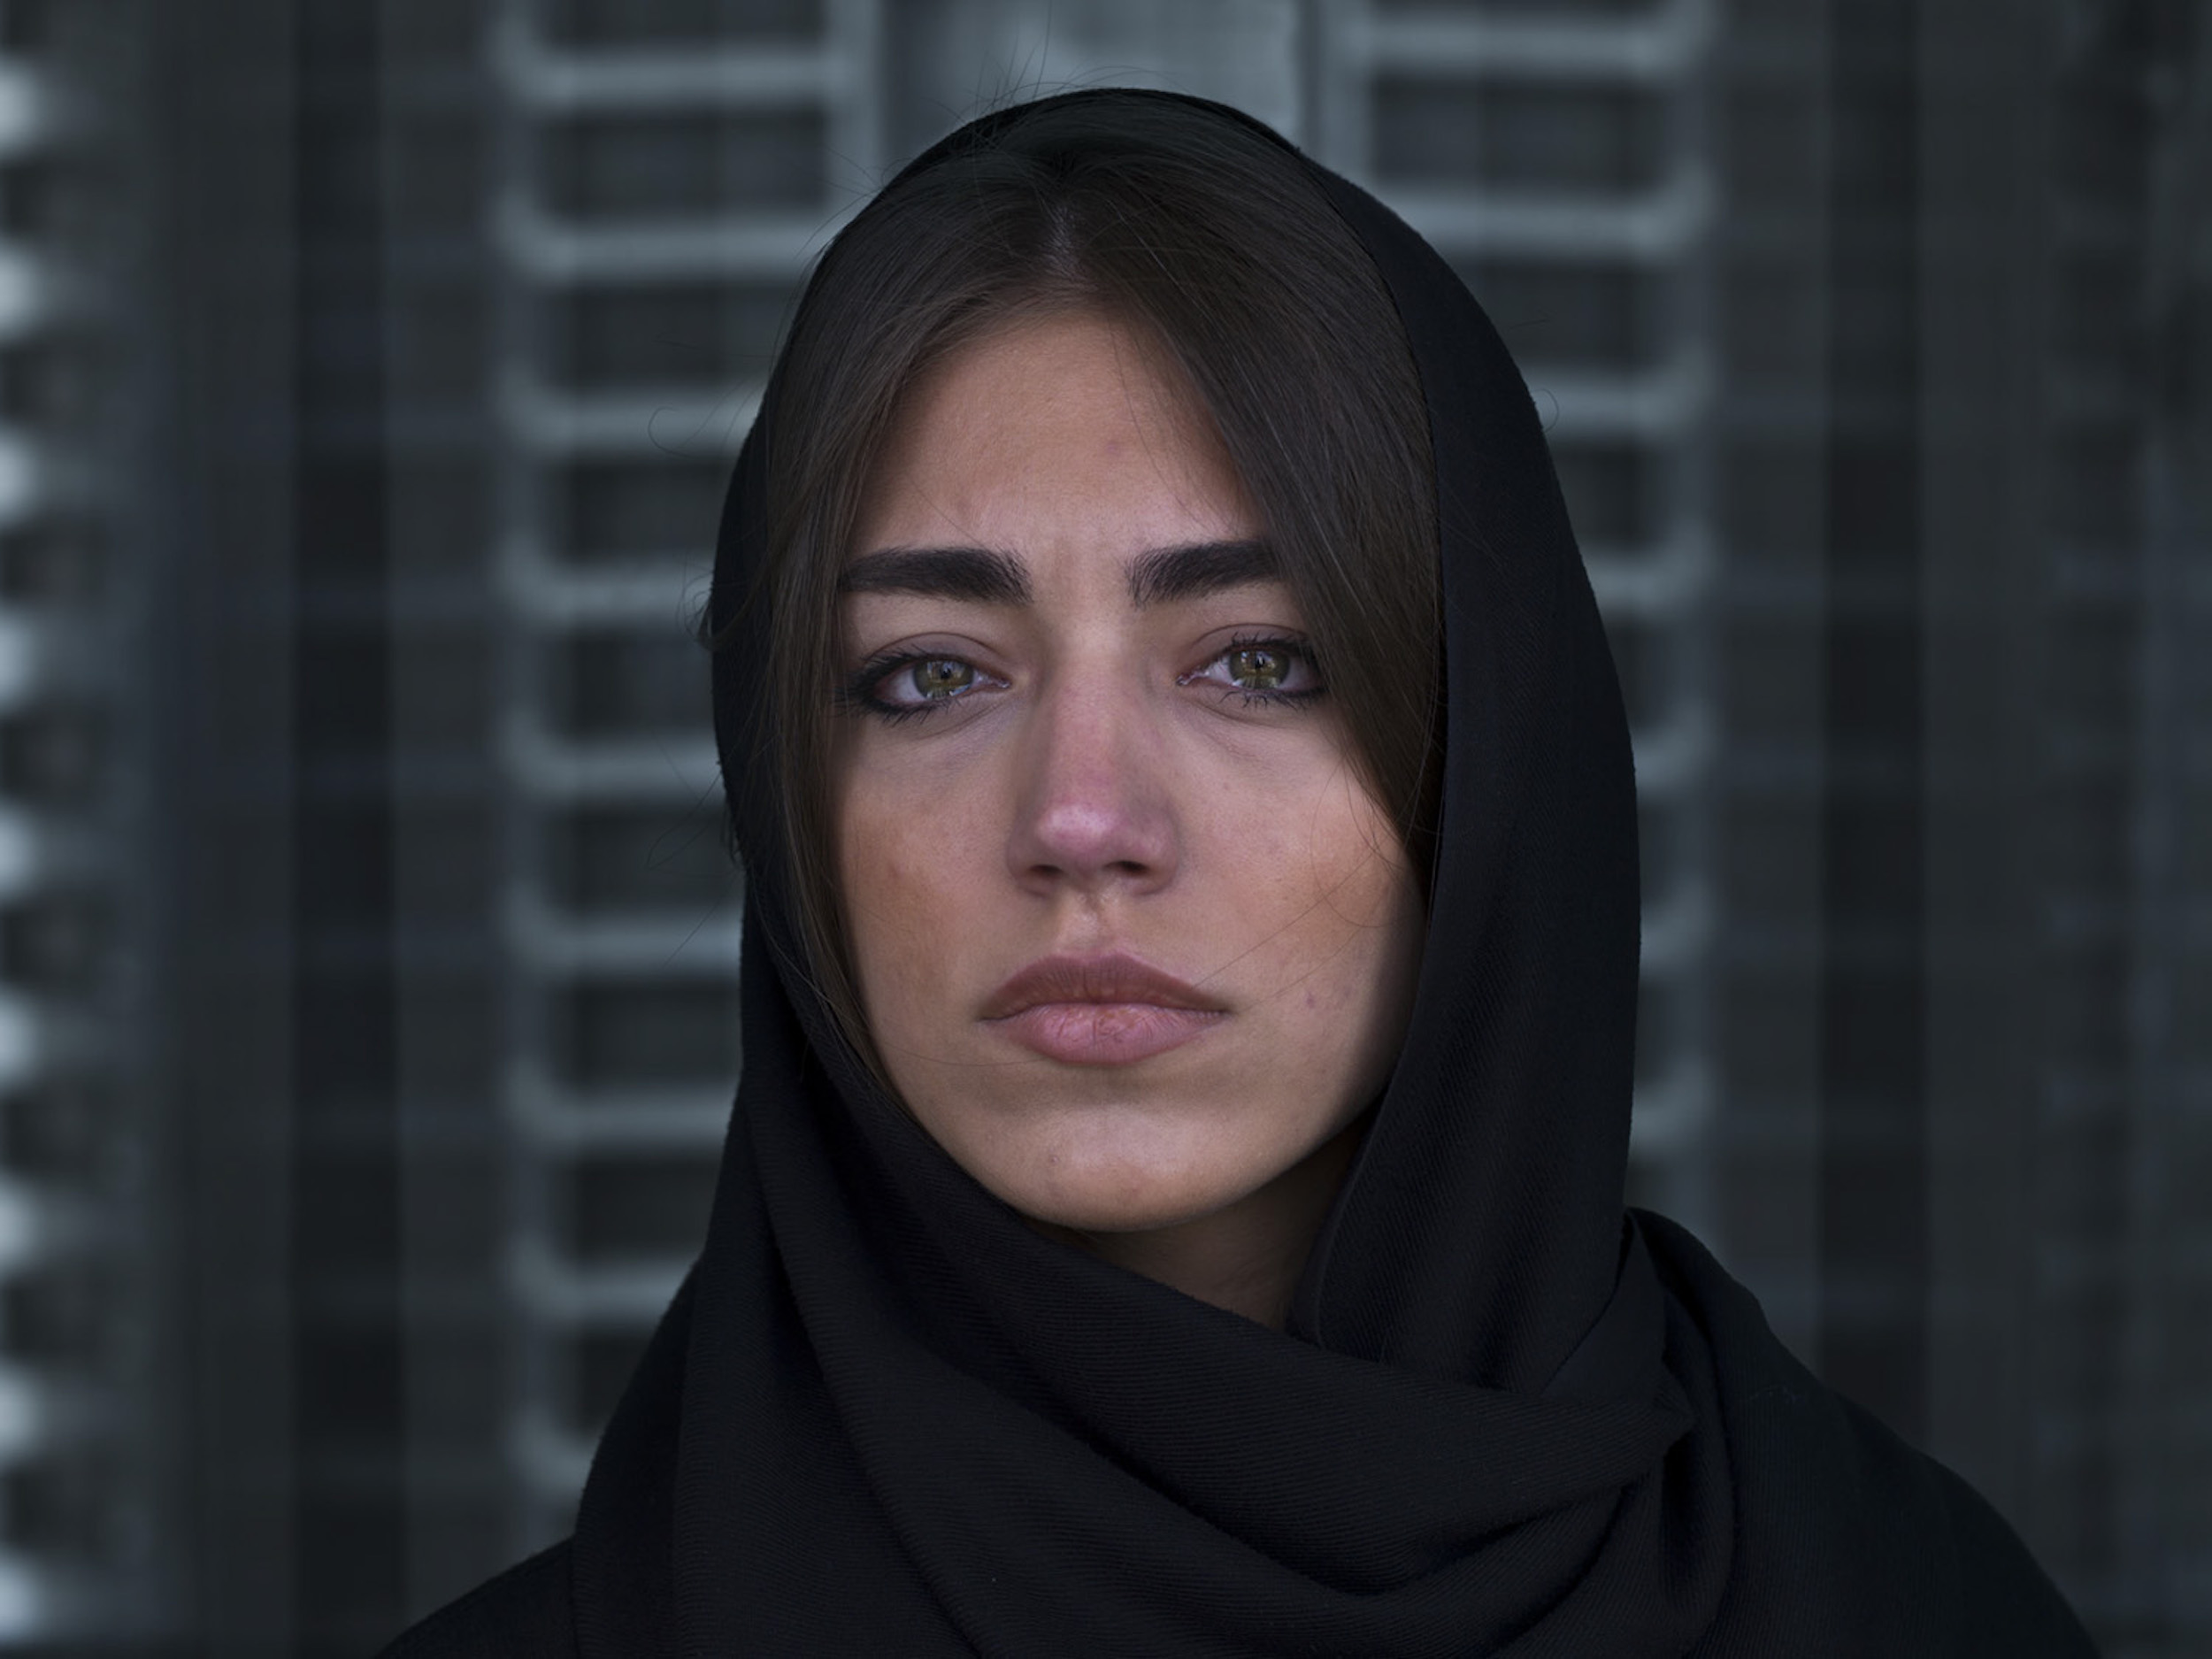 """Thomas Erben Gallery – 25 years - Newsha Tavakolian, <i>Look (portrait)</i>, 2012/13. Inkjet print, edition of 7 (+2 AP), 41 x 55 in. <br></<br><br></<br> This photograph by Newsha Tavakolian was part of <i>Look</i>, her first US solo exhibition in 2013. Over the years - parallel to her career as a photojournalist, publishing in such venues as <i>Time</i>, <i>Newsweek</i>, <i>Stern</i>, <i>Le Figaro</i>, <i>The New York Times</i>, <i>Der Spiegel</i>, Le Monde</i>, and <i>National Geographic</i> - Tavakolian has developed projects focusing on women's rights and other social issues. Since 2019 she is a full member of Magnum Photo. <br></<br><br></<br> Regarding this body of work, she wrote:<br></<br> """"<i>Look</i> began with my desire to look deeply into the lives of people around me whom I have known for over ten years, and who live in my building. I wanted to bring to life the story of a nation of middle-class youths who are constantly battling with themselves, their isolated conformed society, their lack of hope for the future and each of their individual stories. Over a period of six months, at 8 pm, I fixed my camera on a tripod in front of the window where I had watched the same view of the city for ten years. I tried to capture a moment of each of their stories, within the frame of a window looking out onto the cold concrete buildings which surround us daily."""""""